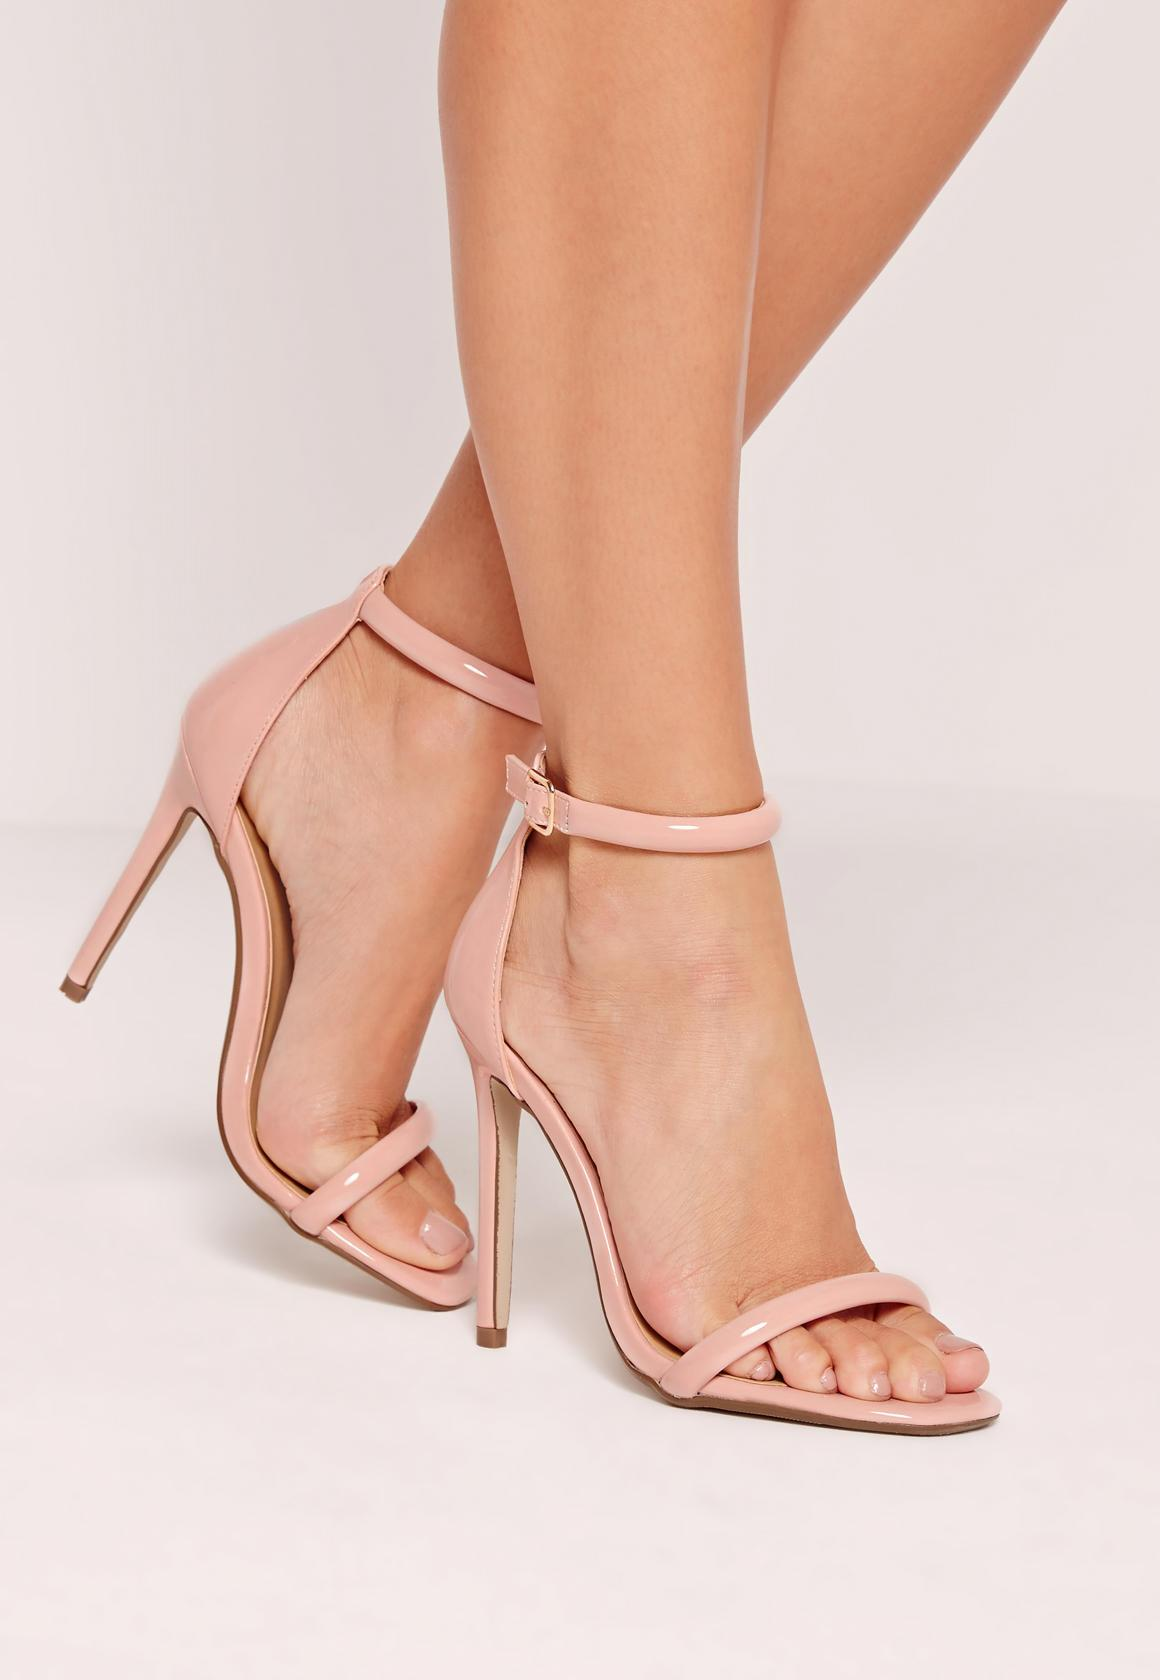 Barely There Ankle Strap Sandals - Pink Missguided fOhiHCk